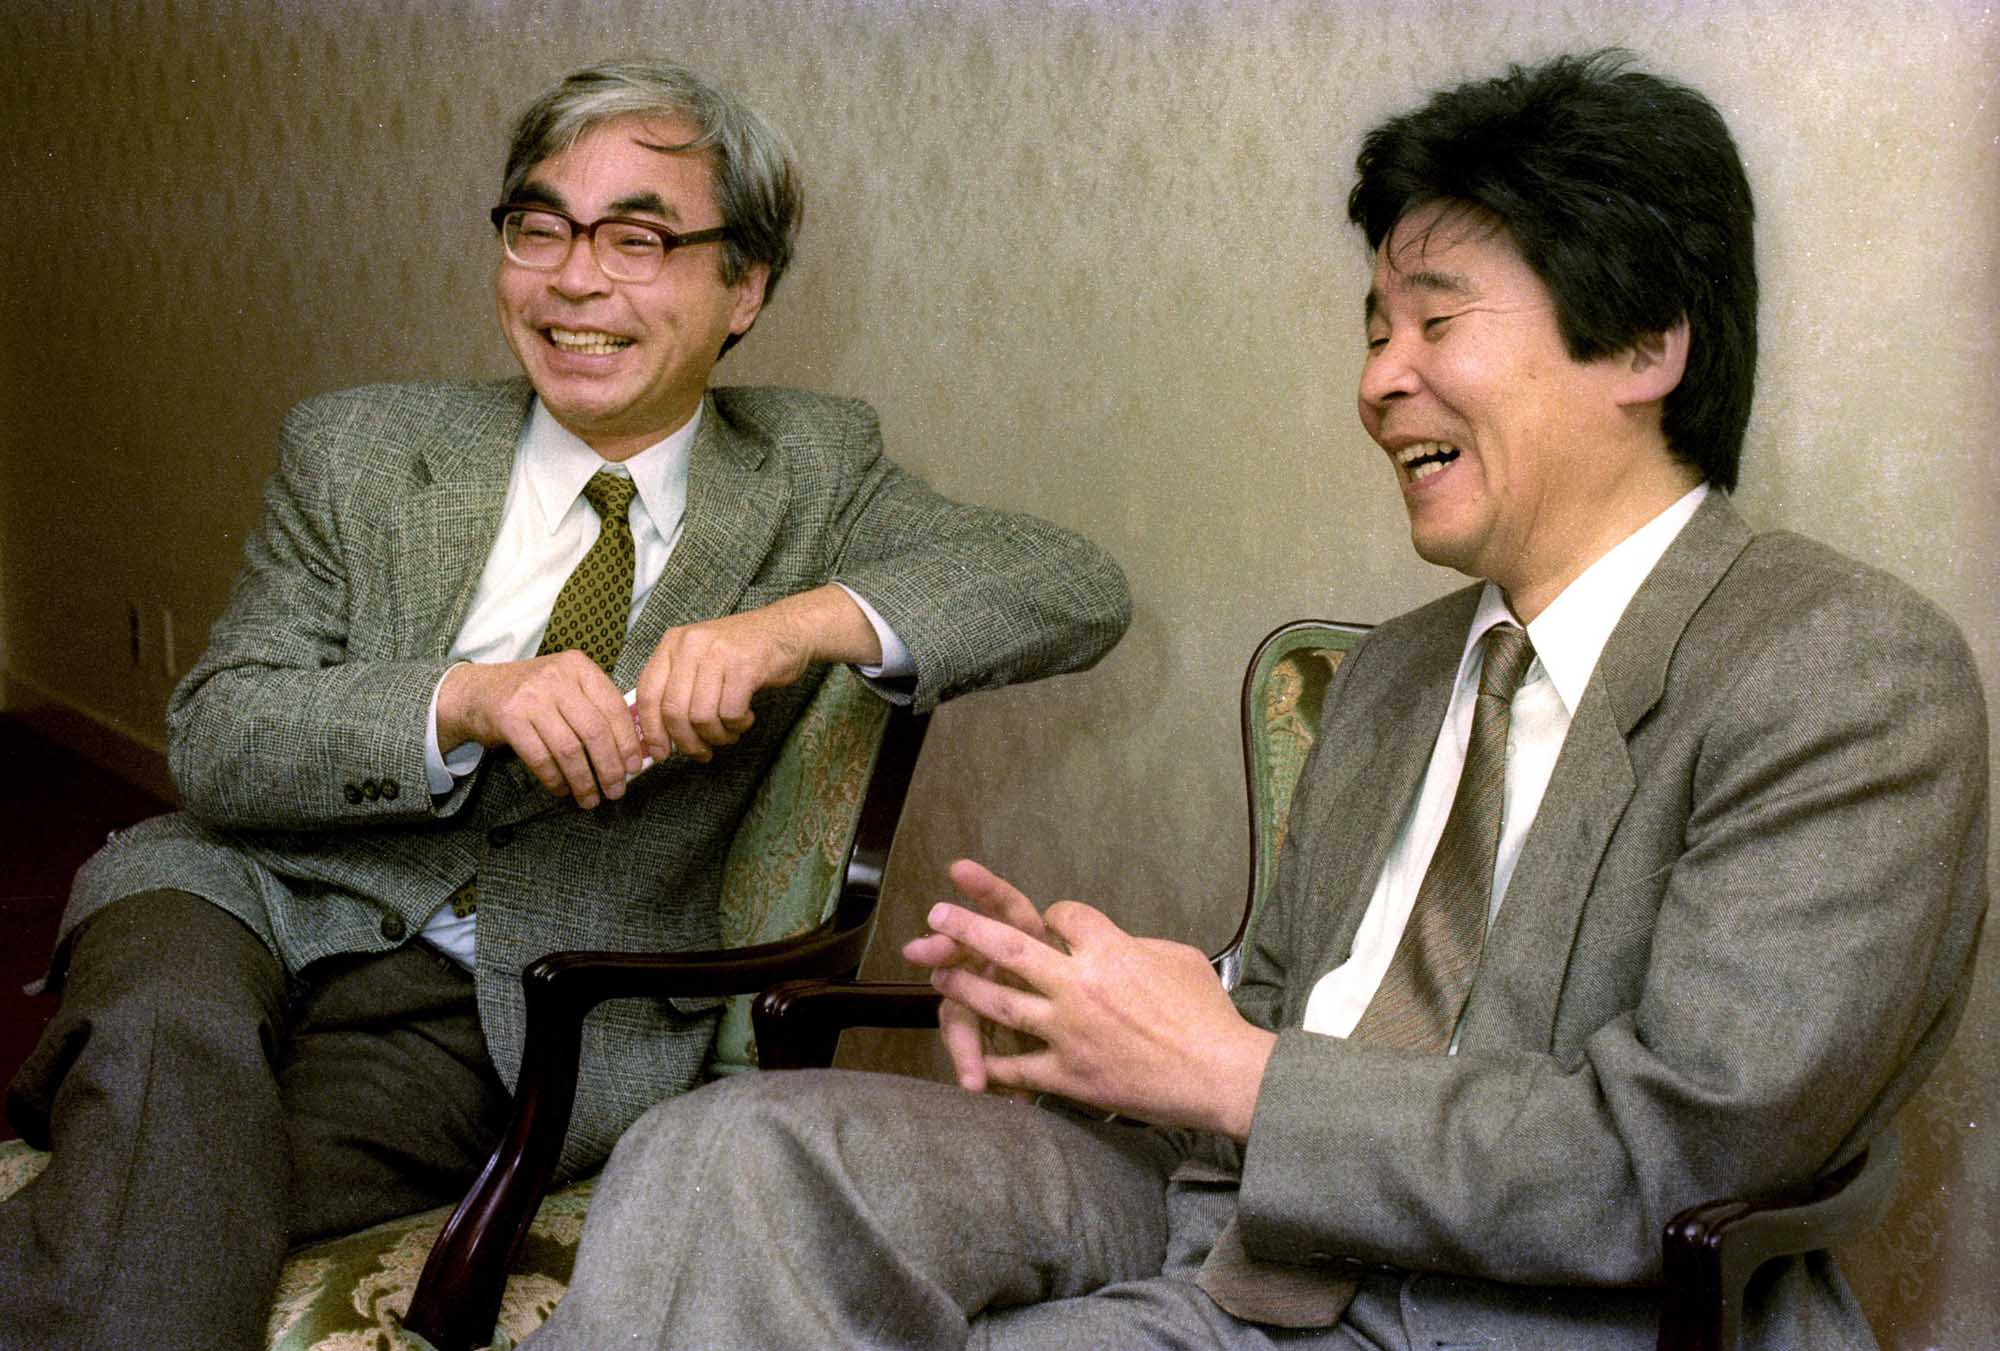 Animated film director Isao Takahata (right) speaks during an interview as his colleague Hayao Miyazaki looks on in November 1990.